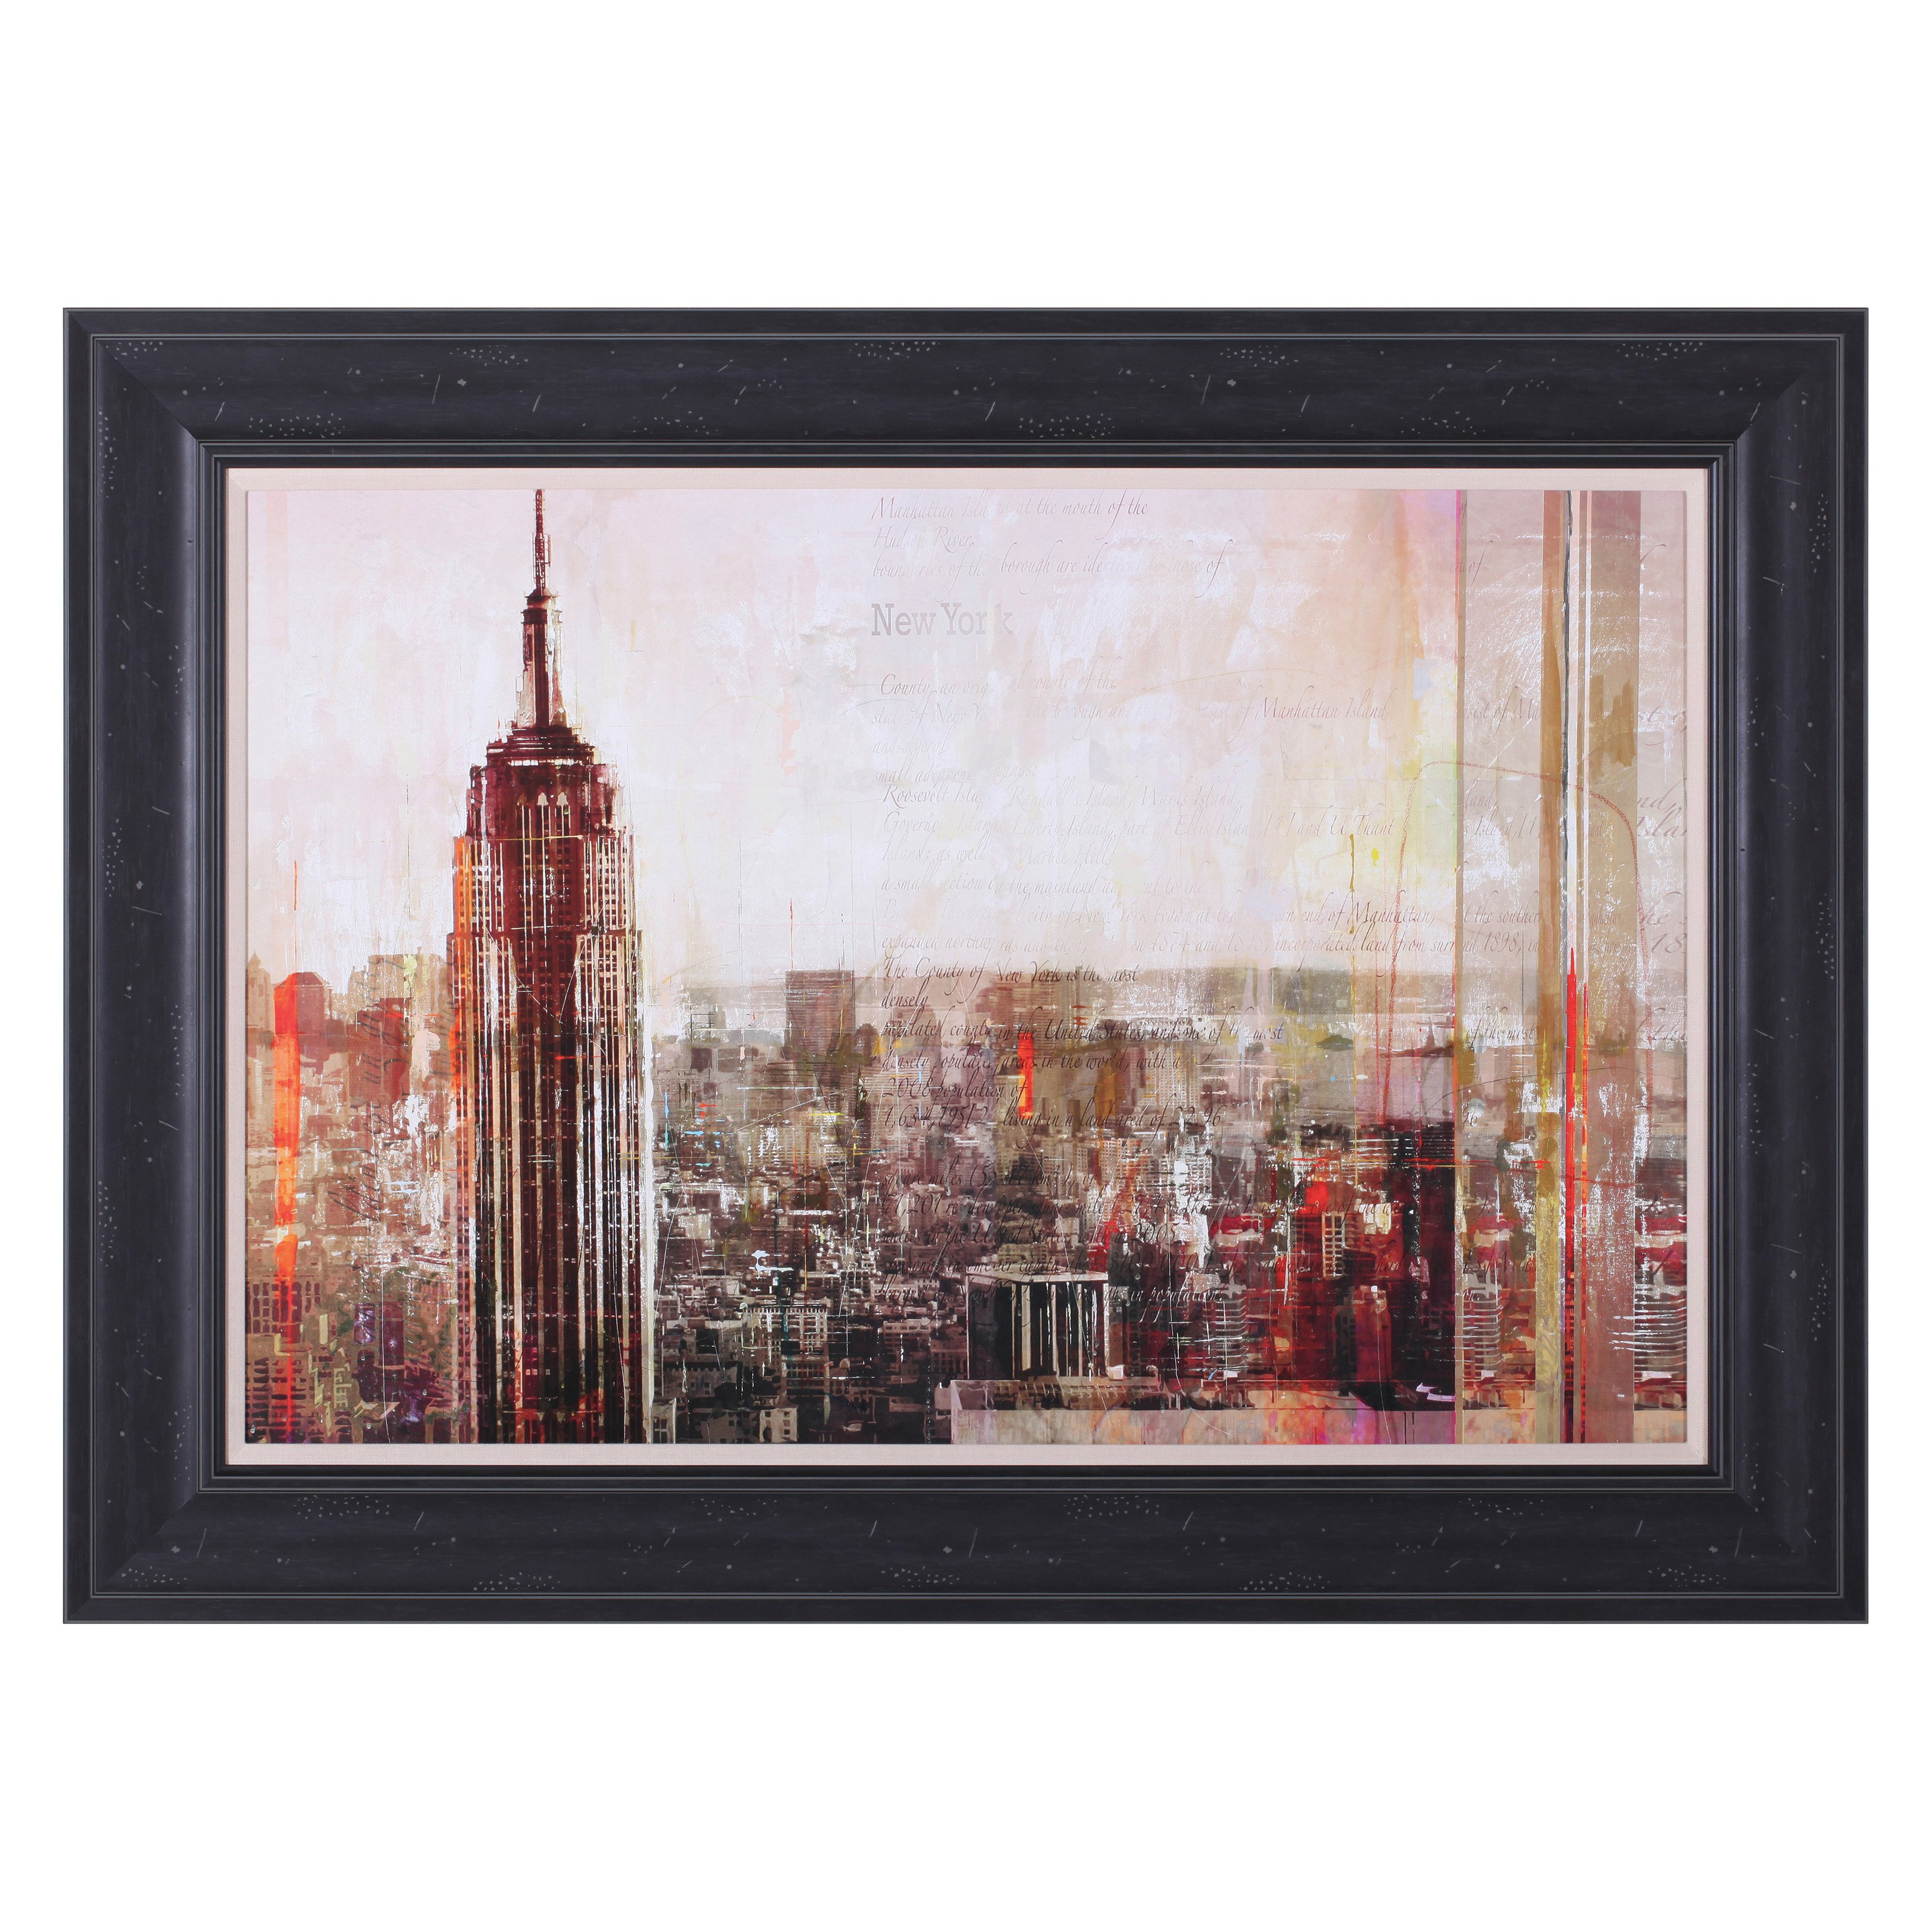 Art Effects Shades of New York Framed Wall Artwork by Art Effects